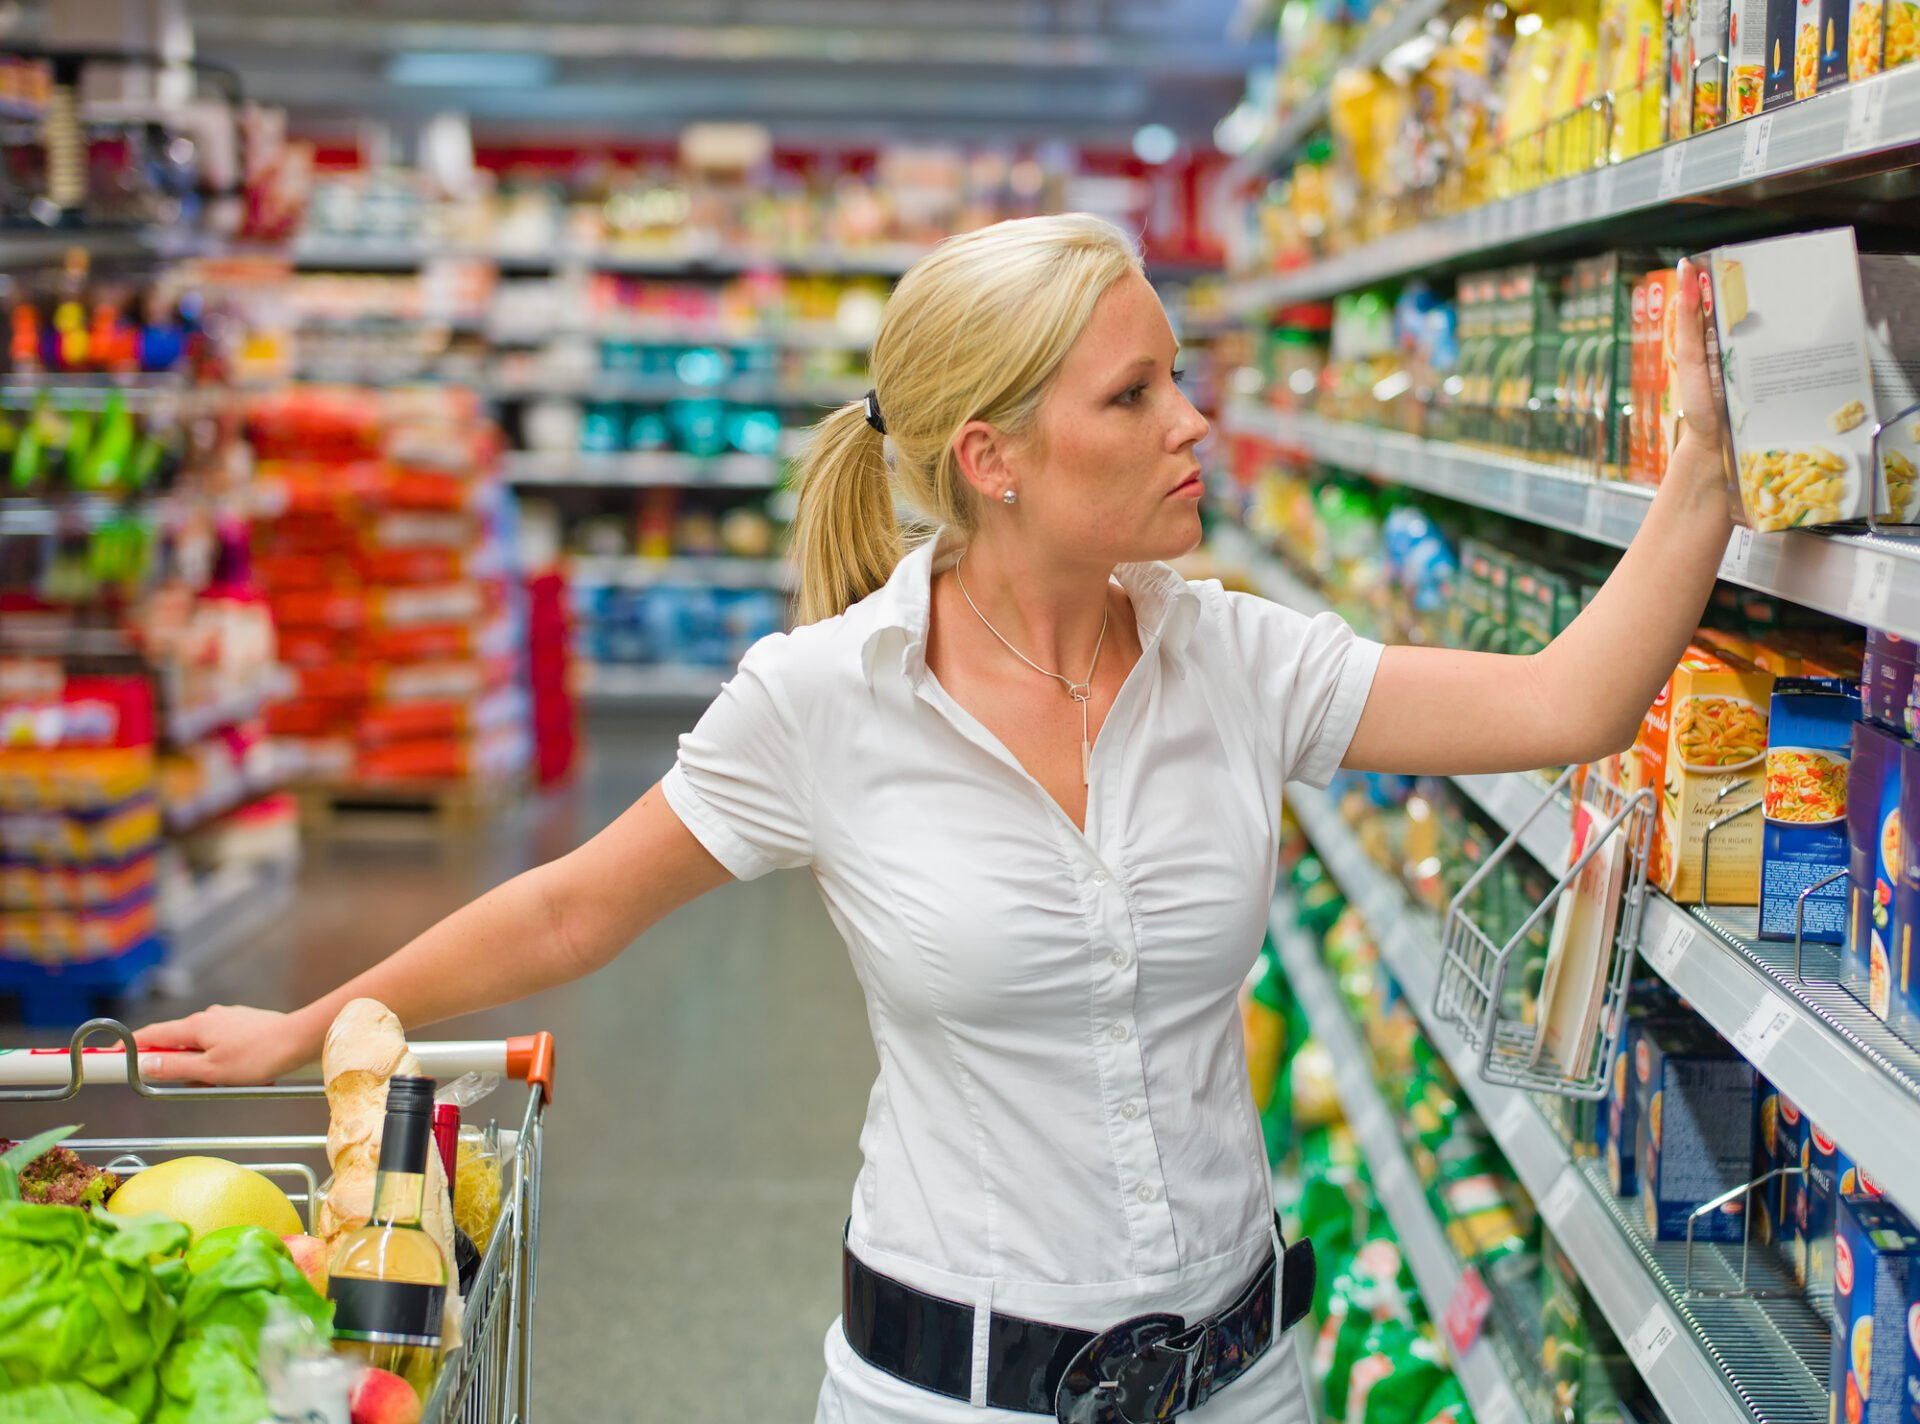 a woman when buying food in a supermarket. everyday life of a housewife